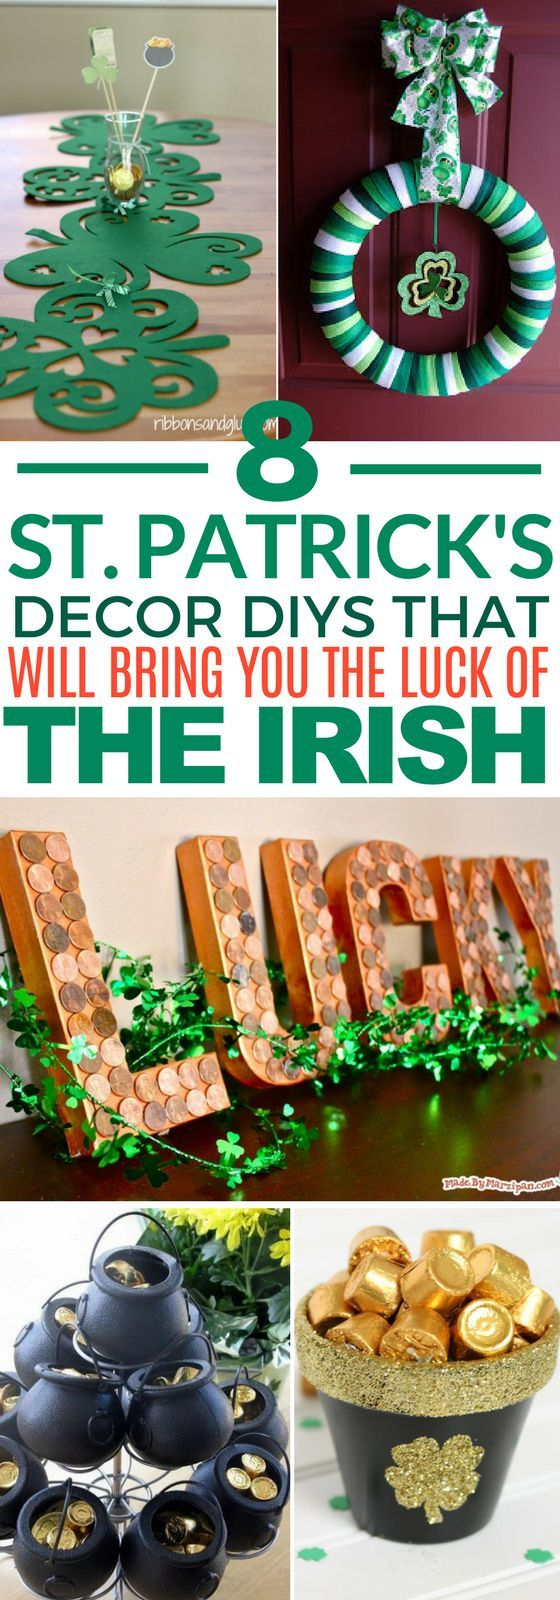 These 8 St. Patrick's Day DIY Decor Ideas Are ADORABLE! If you are looking for a craft to make around St. Patty's Day, try one of these.